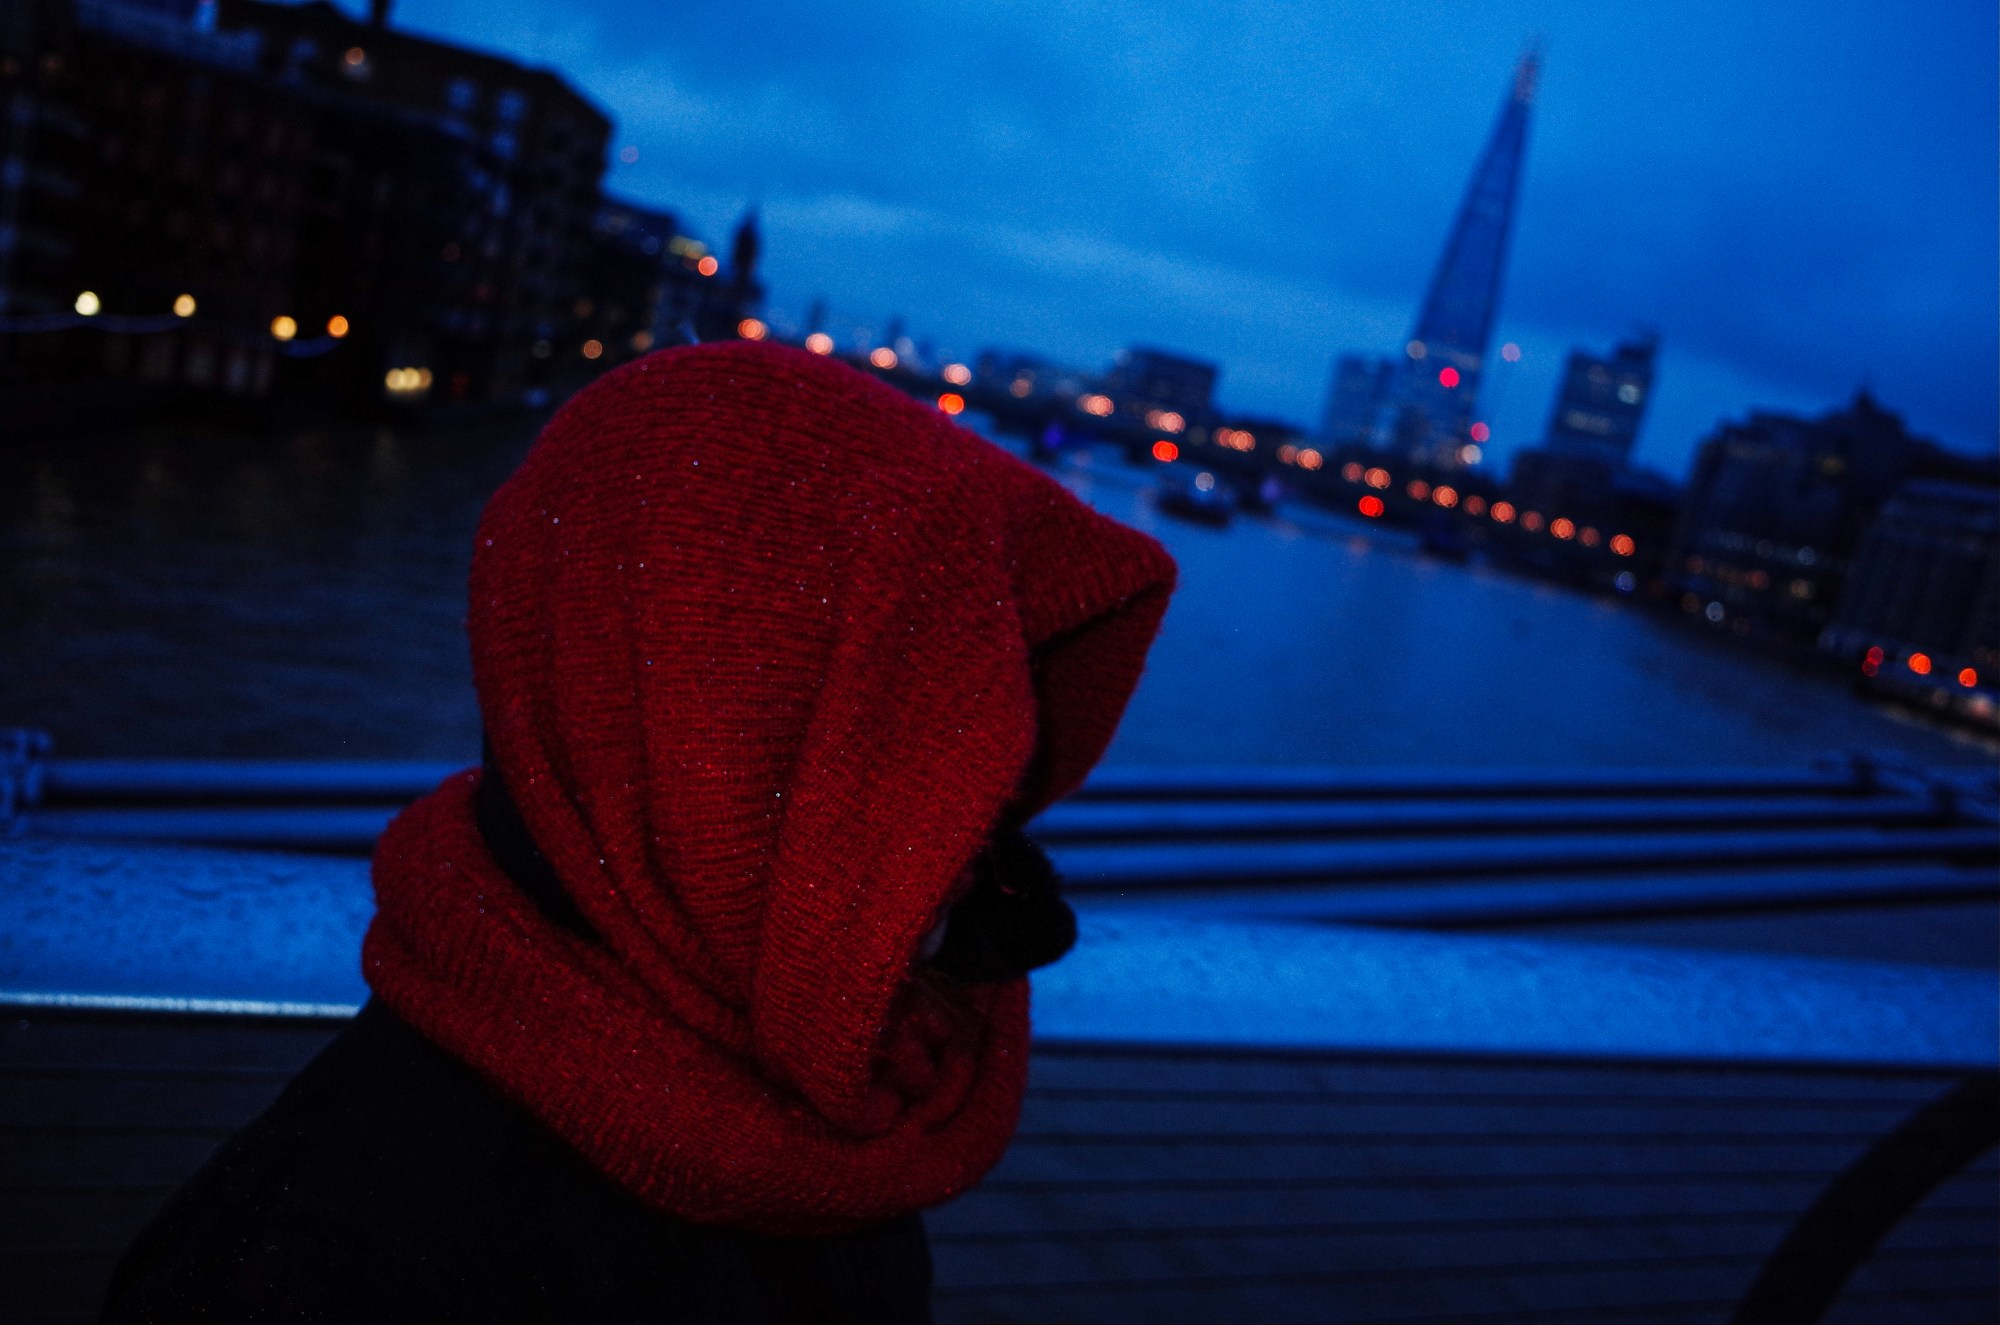 Cindy with red scarf, bridge to Tate Modern, London 2018